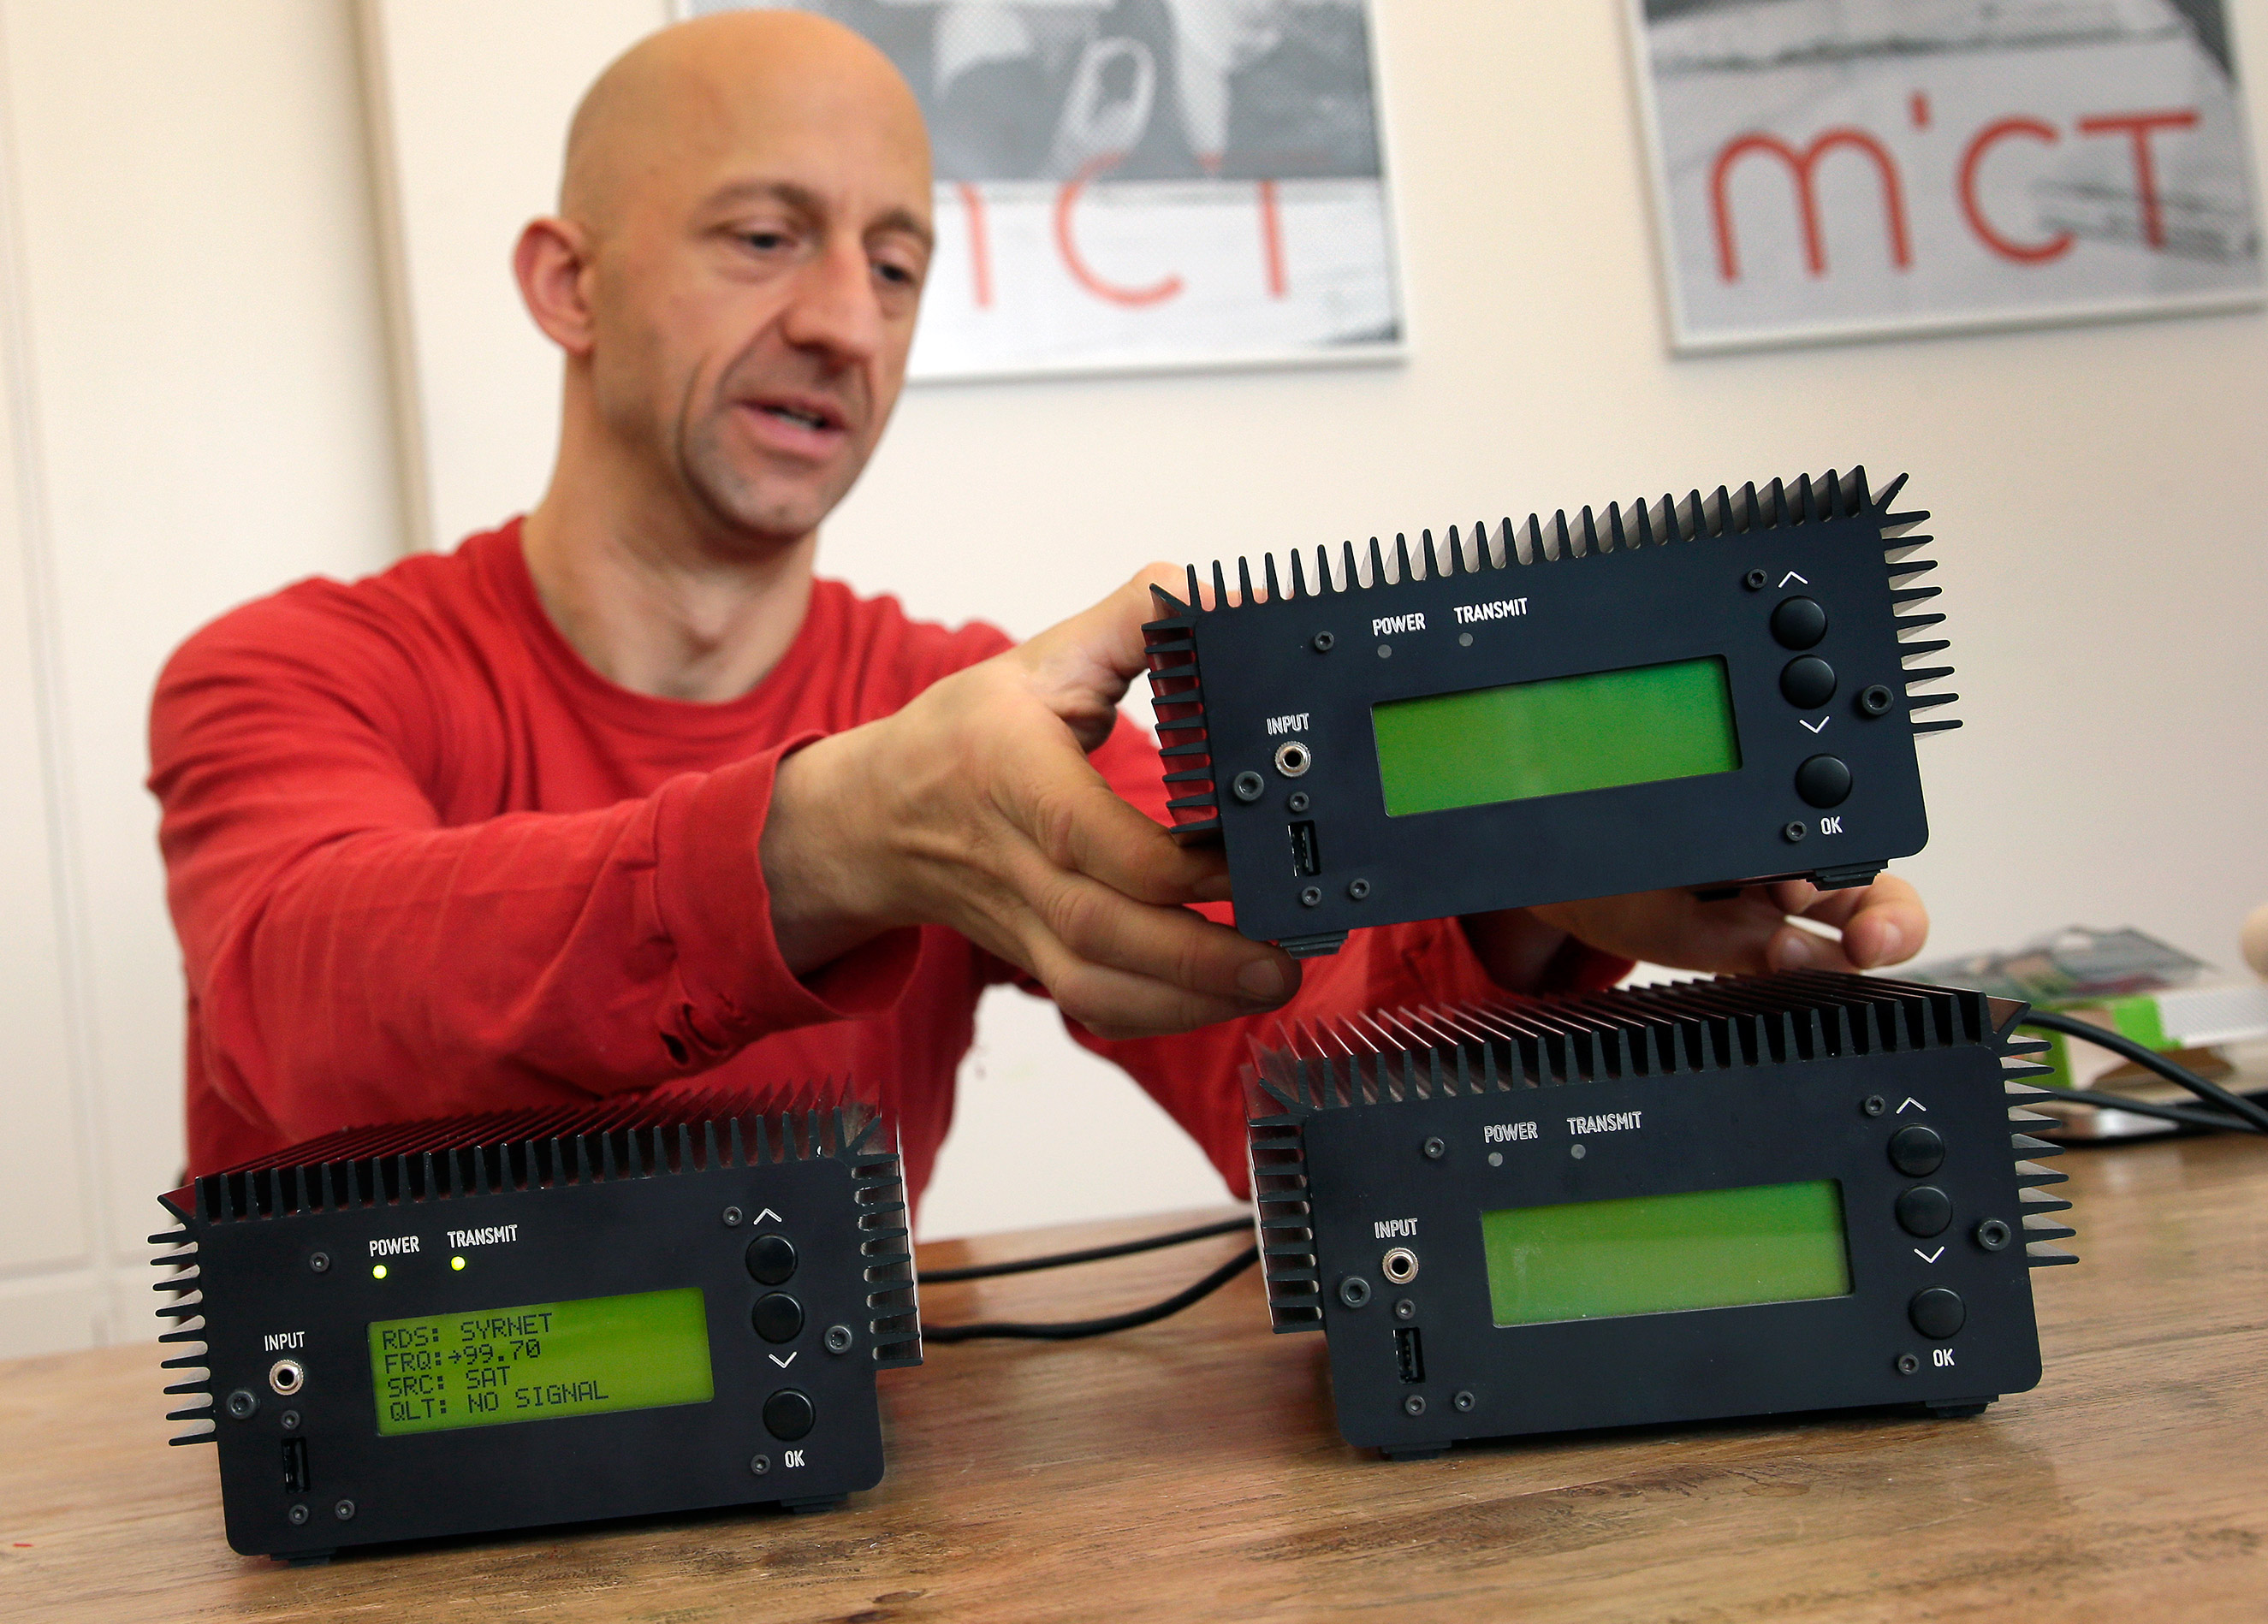 Philipp Hochleichter of the Media in Cooperation and Transition organization holds a Pocket FM Radio Transmitter in Berlin, Germany, Dec. 21, 2015. As part of the Syrian radio networking project, MICT has designed small modular FM transmitters.